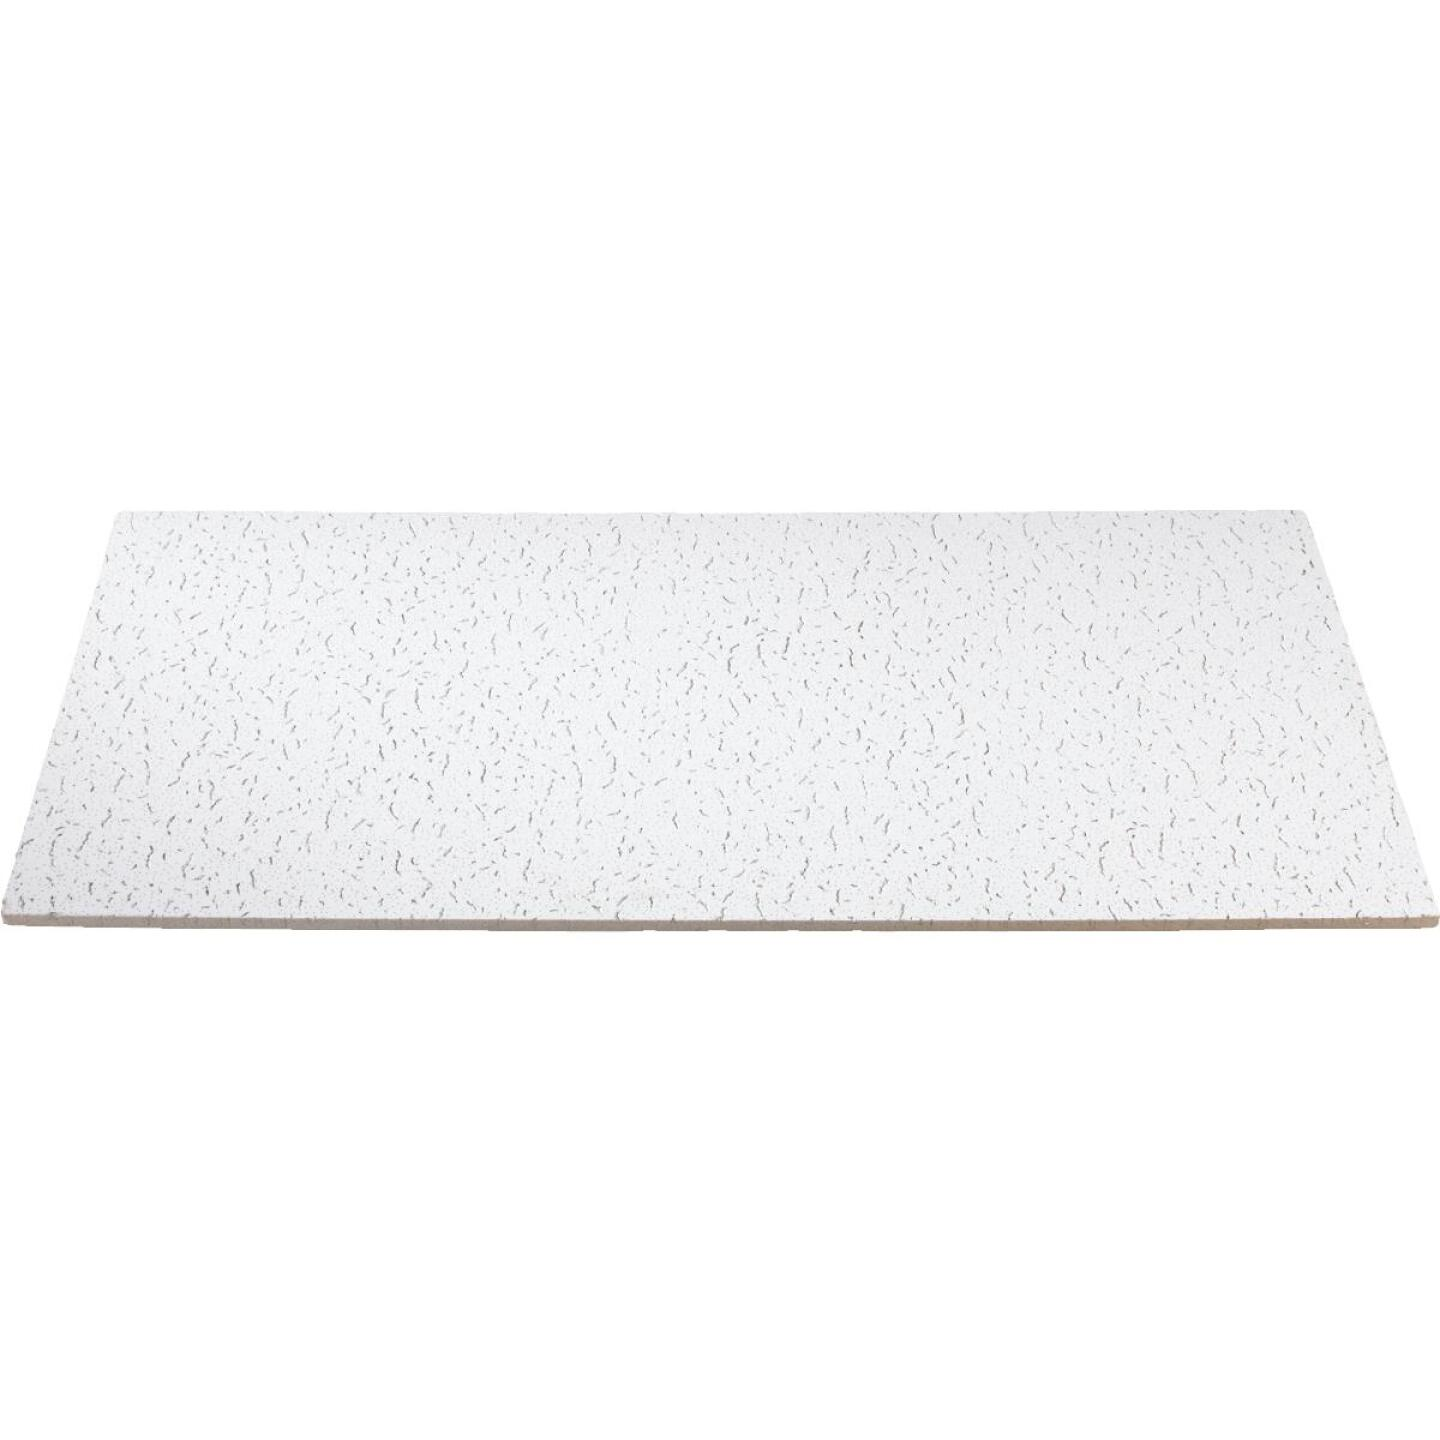 Fifth Avenue 2 Ft. x 4 Ft. White Mineral Fiber Square Edge Ceiling Tile (8-Count) Image 2